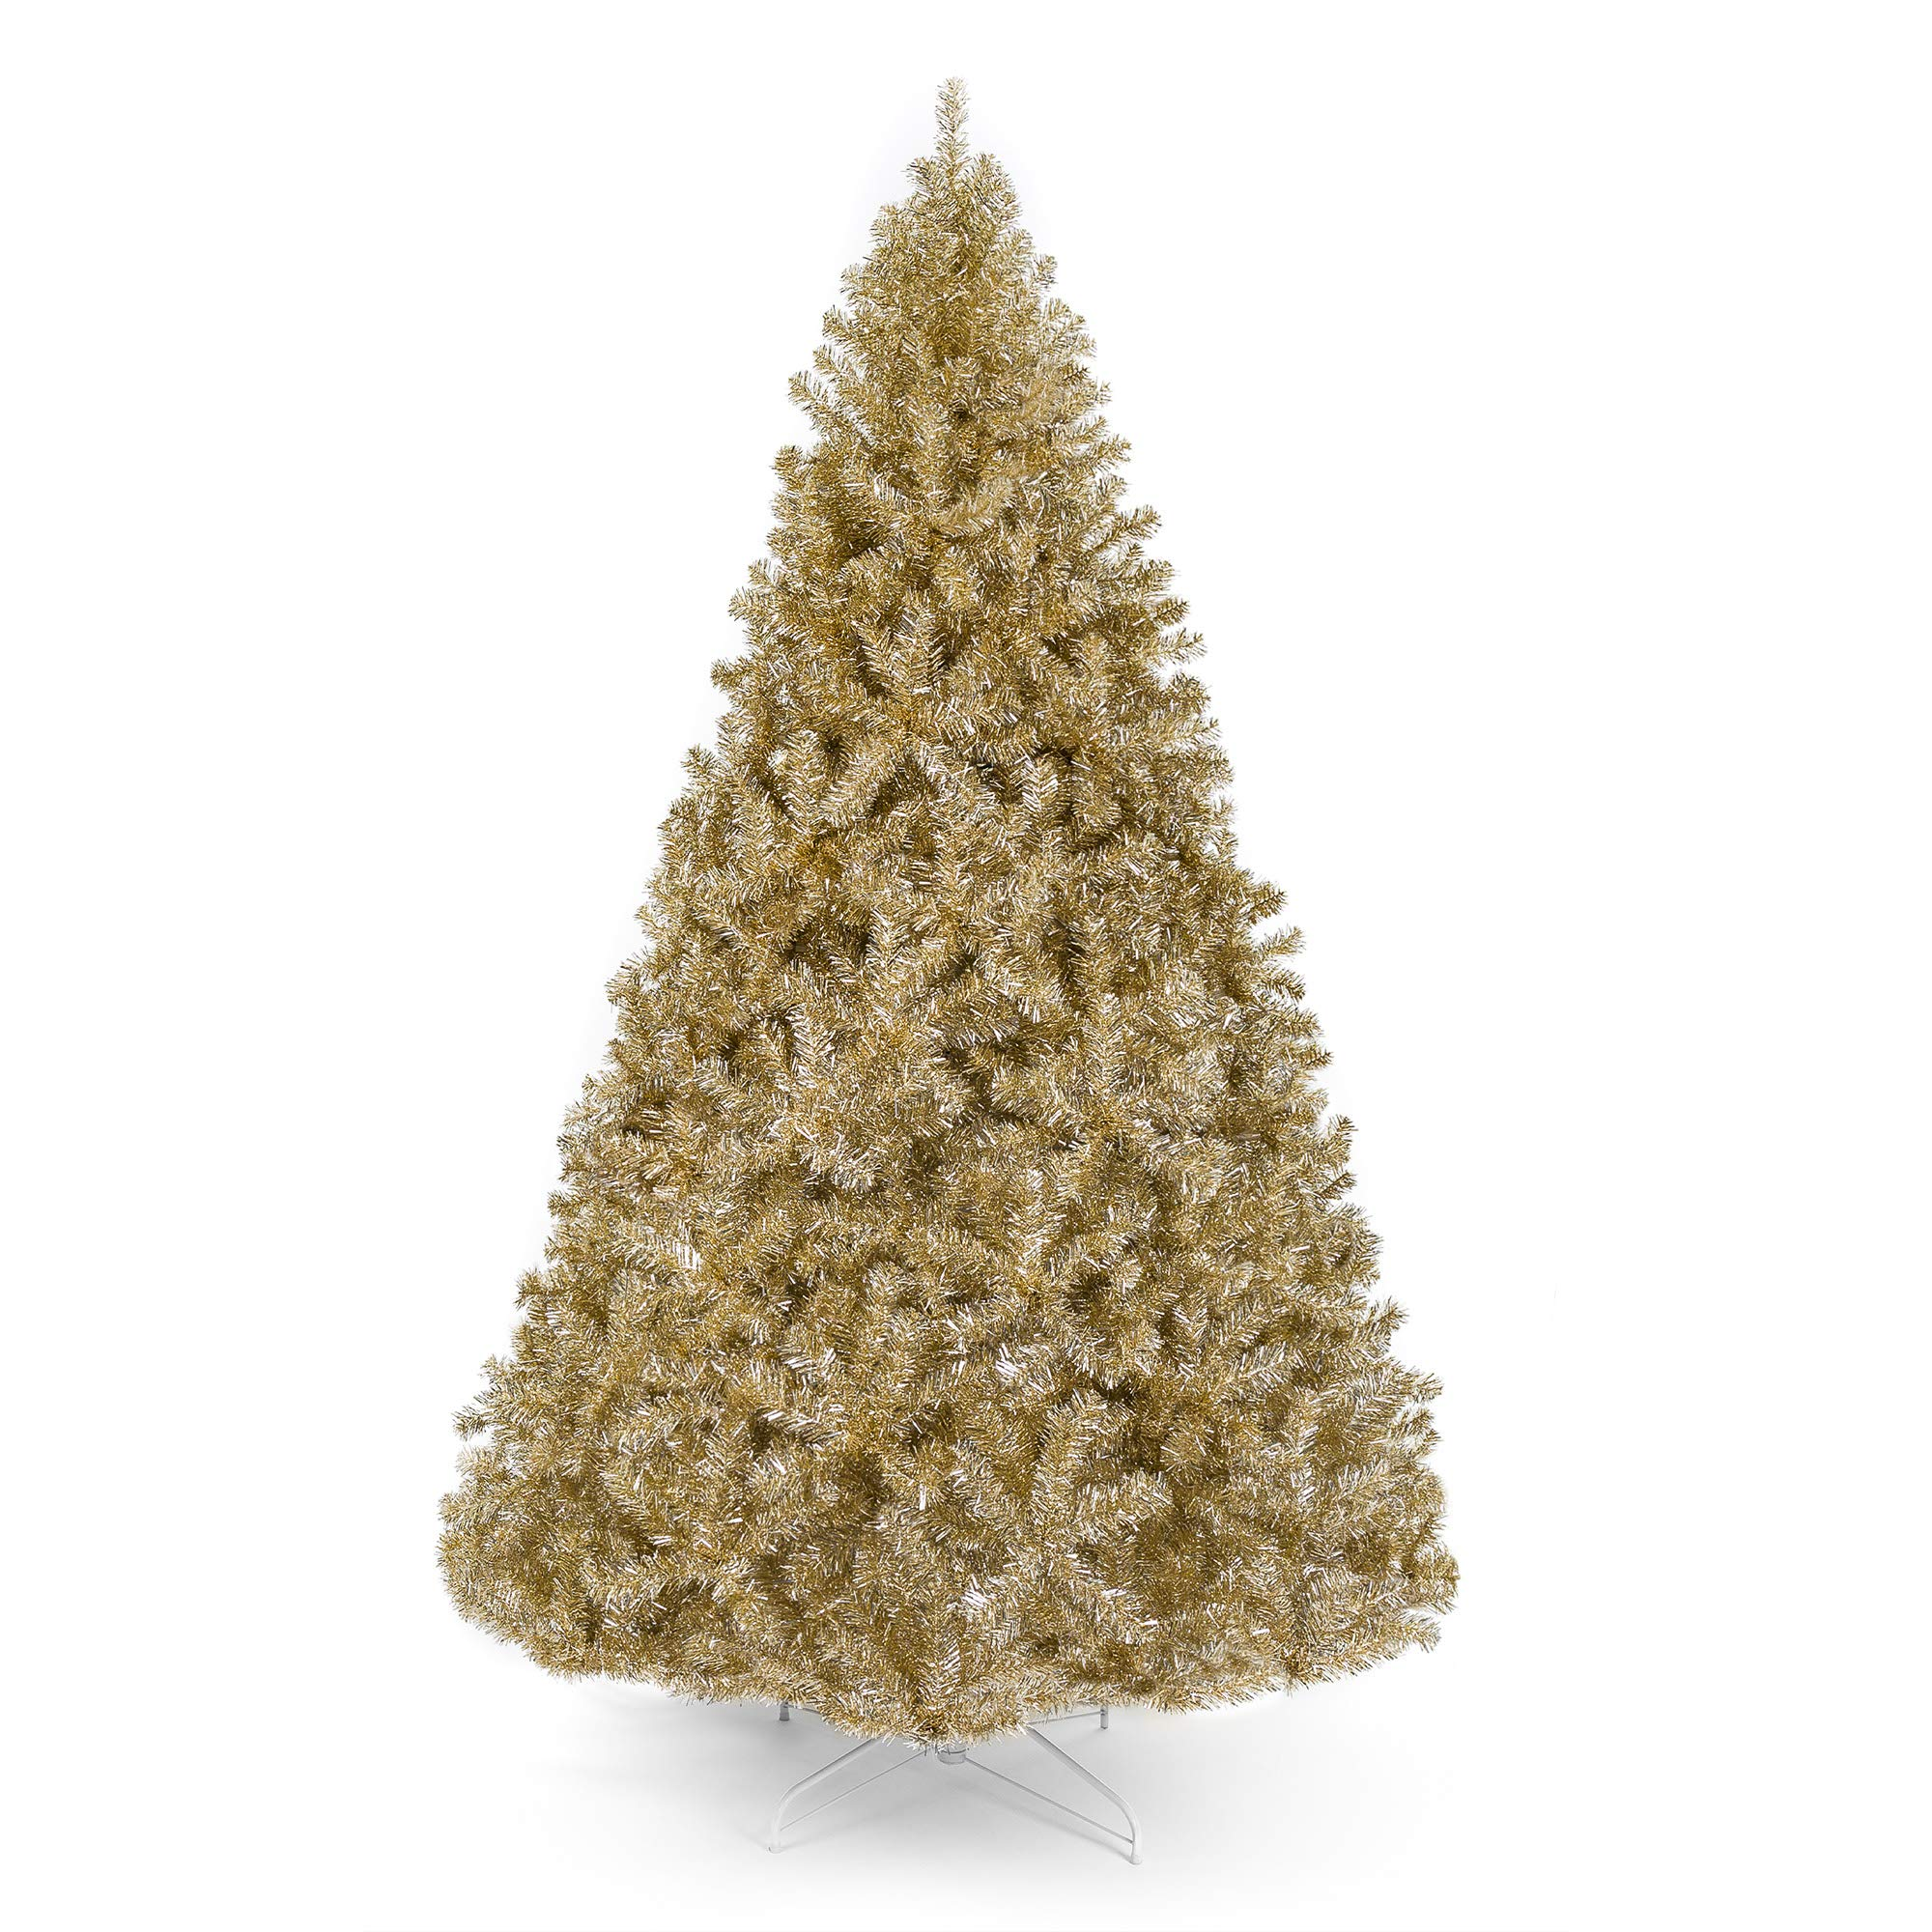 Best Choice Products 6ft Artificial Tinsel Christmas Tree w/ 1,477 Branch Tips - Champagne Gold